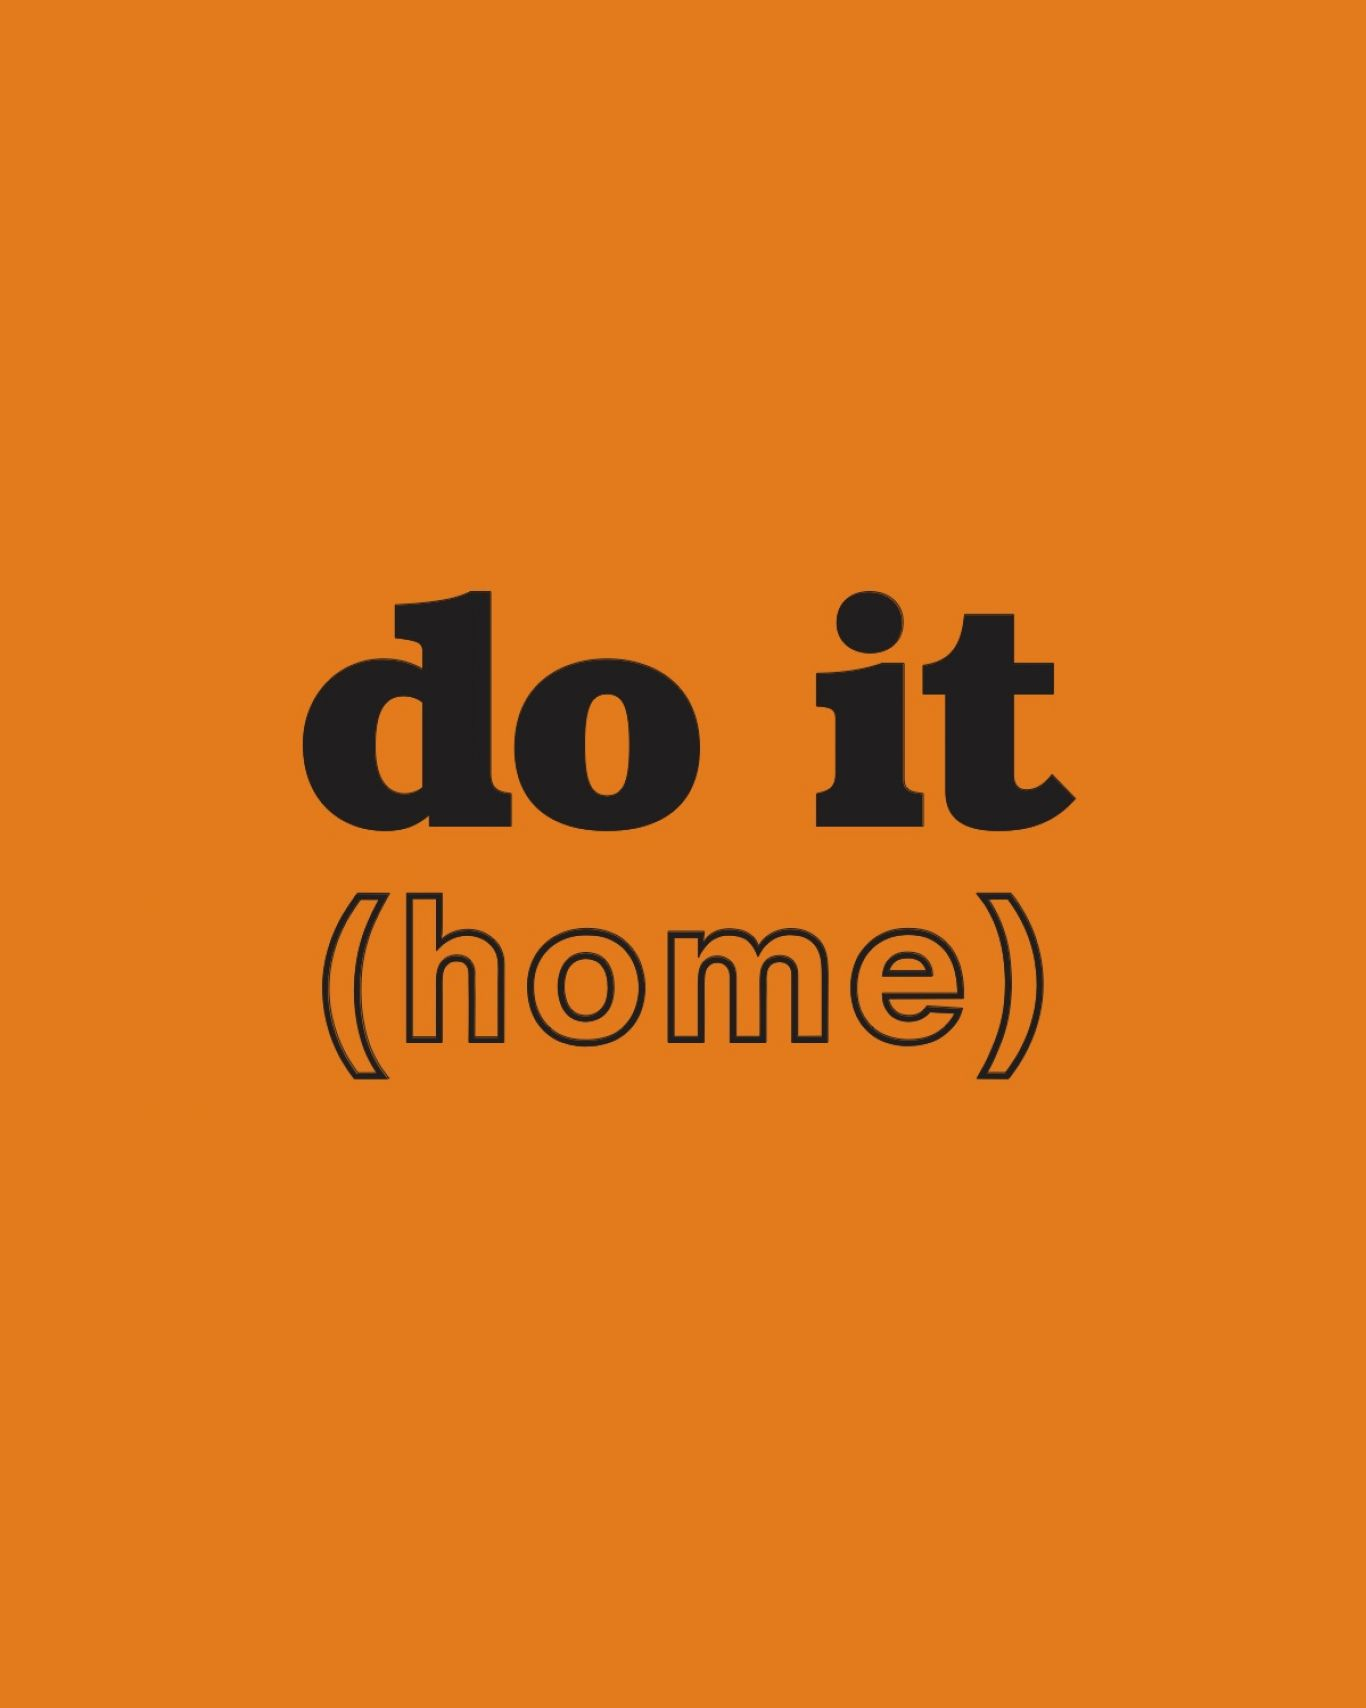 do it (home)